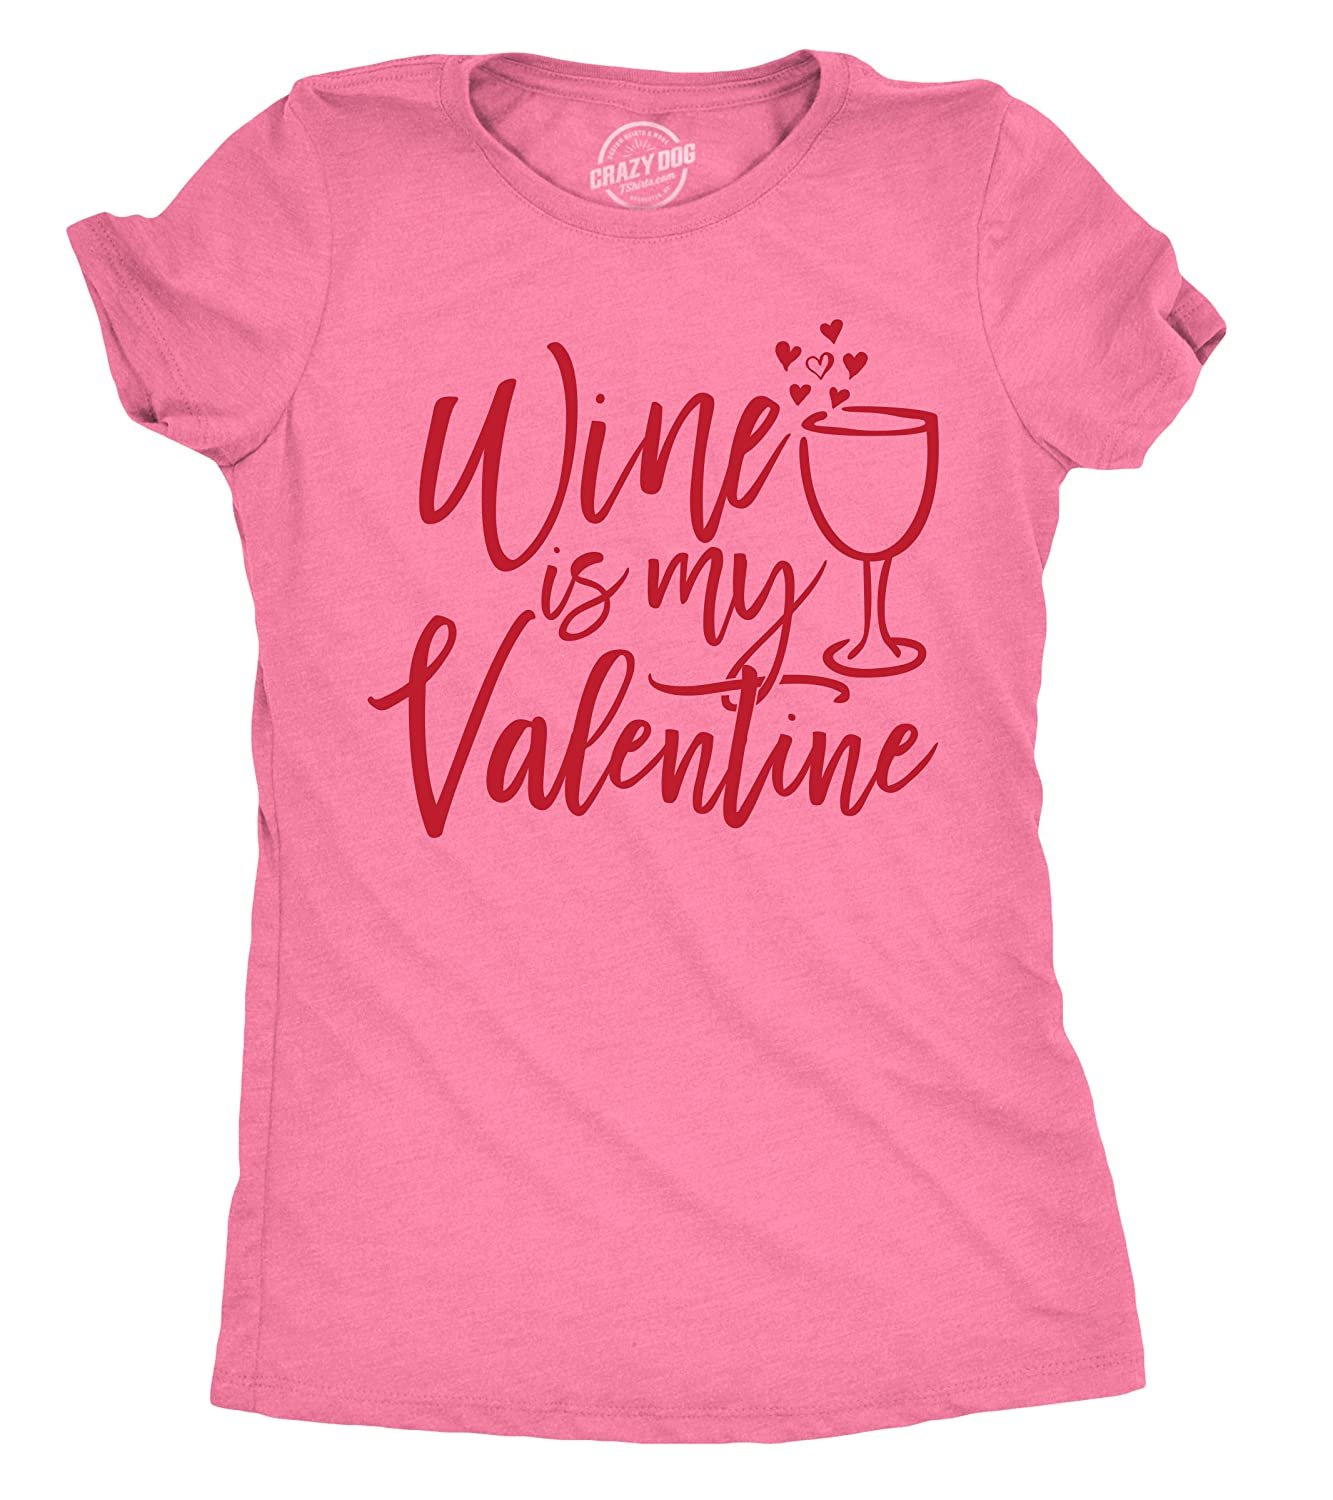 8a0990f67 Amazon.com: Crazy Dog T-Shirts Womens Wine is My Valentine Tshirt Funny  Valentines Day Drinking Tee for Ladies: Clothing